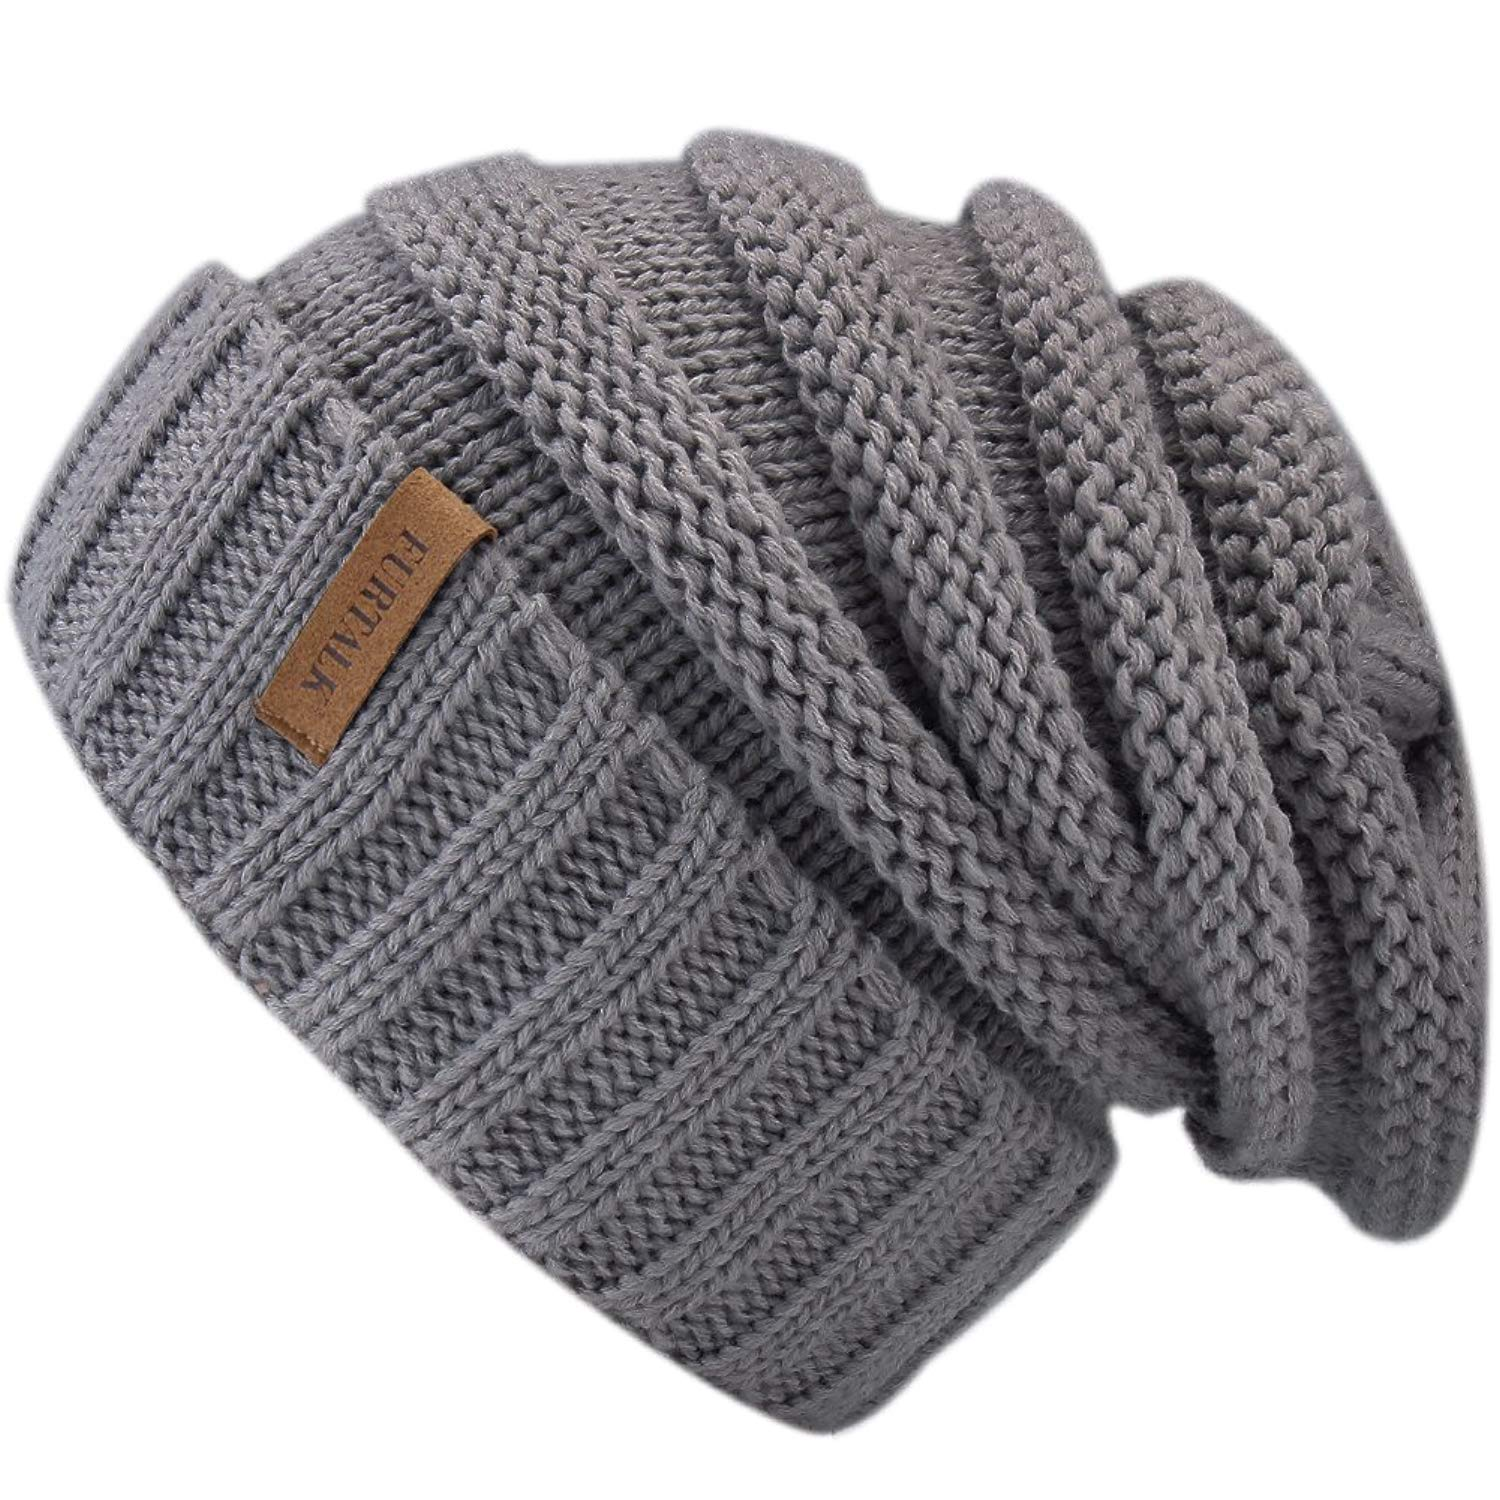 LOVARZI Bobble Hat For Women Knitted Winter Hats With Pom Pom